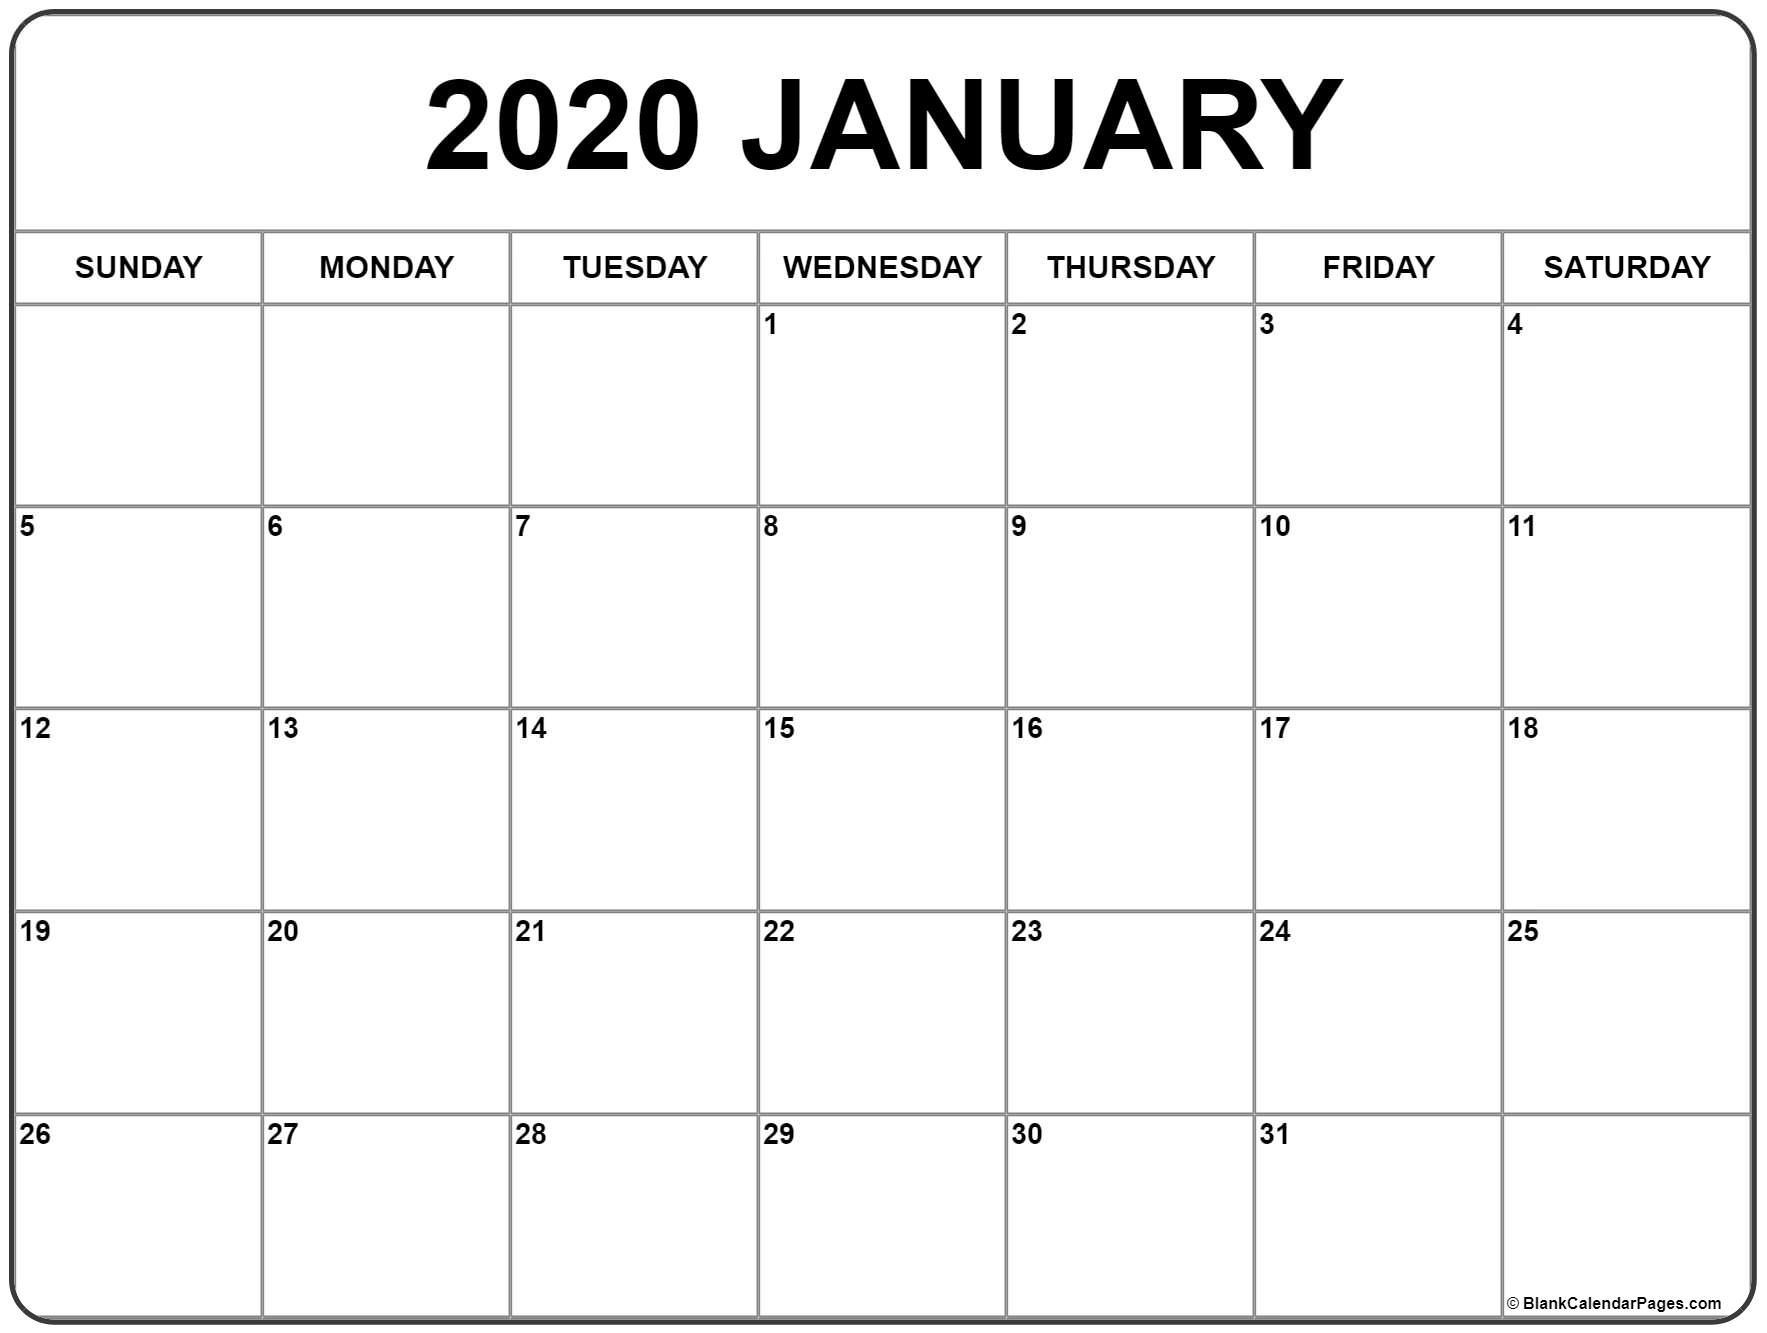 January 2020 Calendar | Free Printable Monthly Calendars  Monthly Calendar August  2020 8 X 11